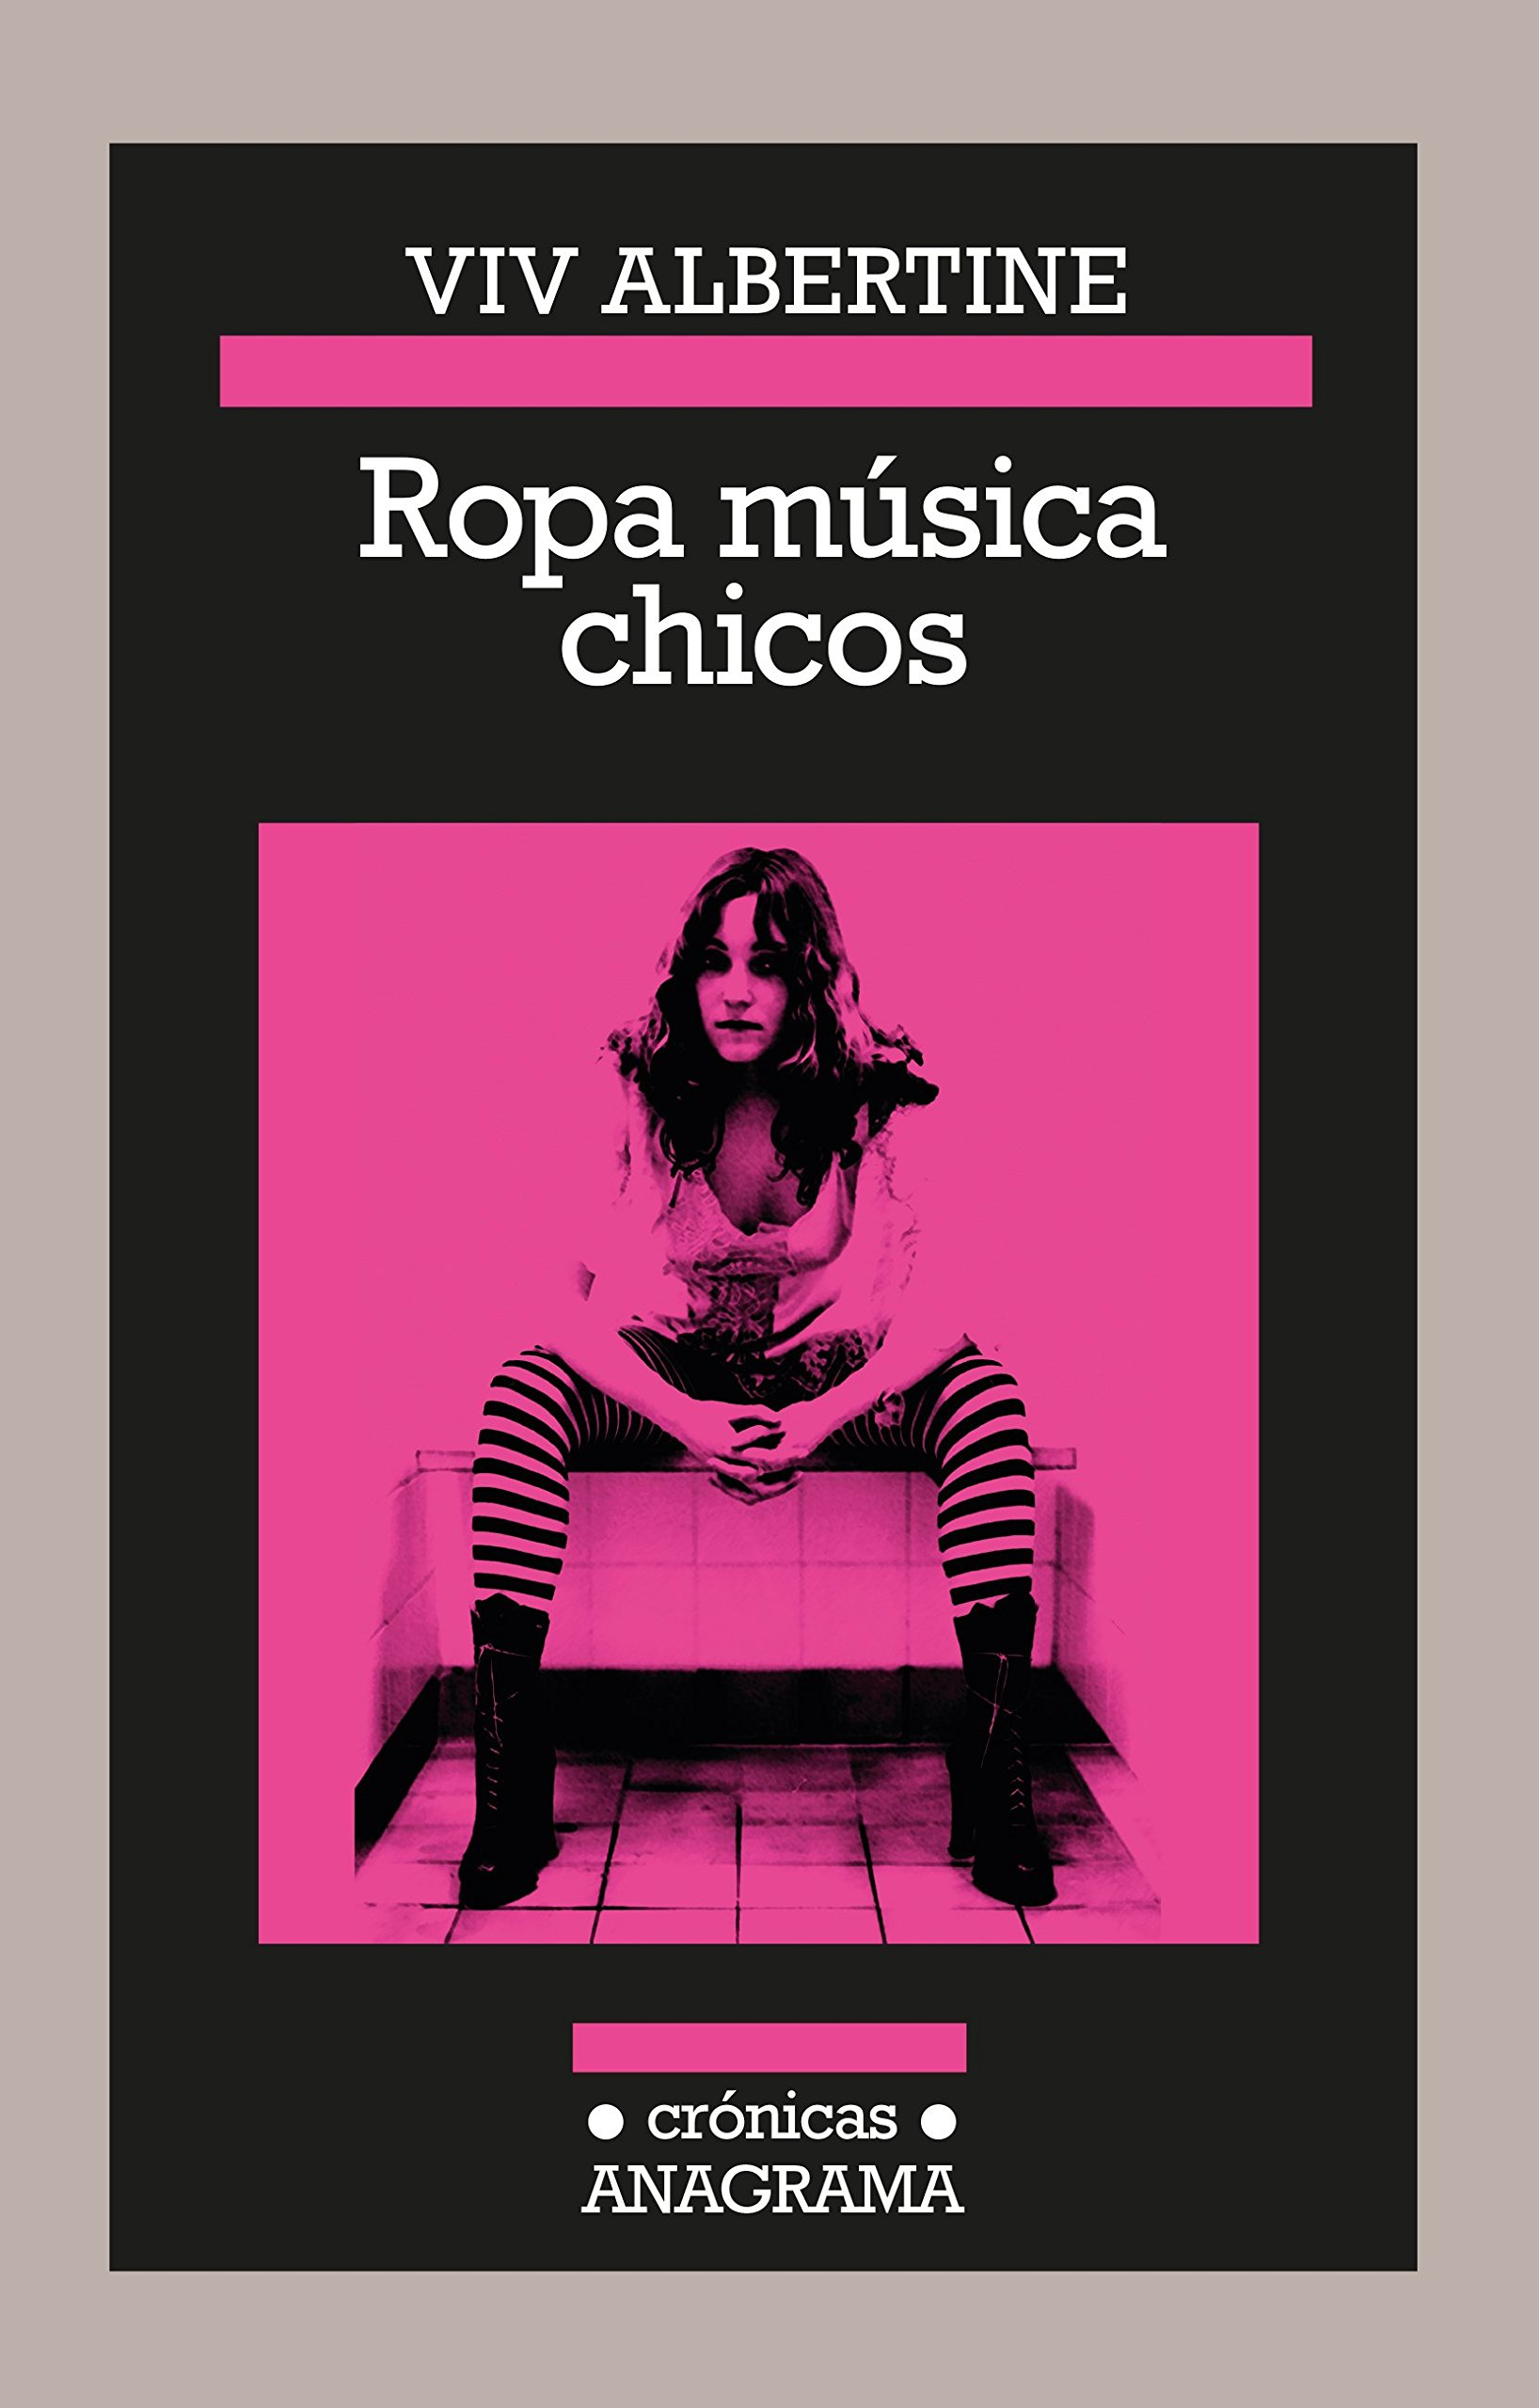 Ropa musica chicos (Spanish Edition): Viv Albertine: 9788433926159: Amazon.com: Books